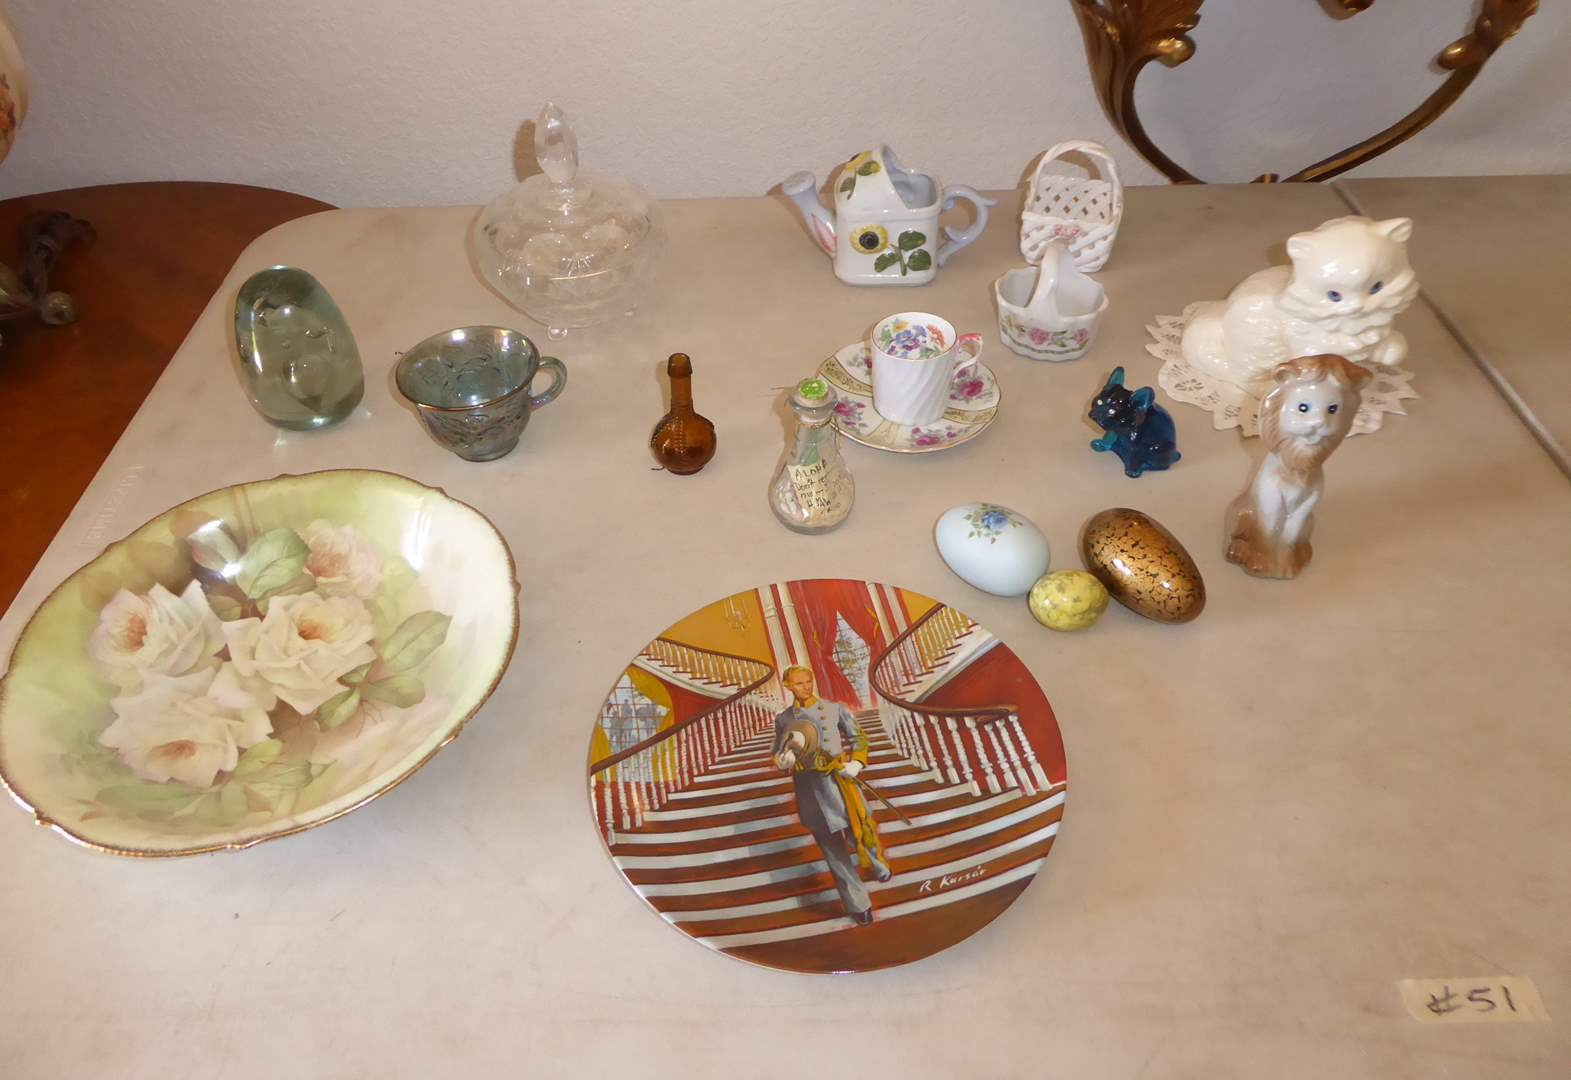 Lot # 51 - Collectible Plates, Figurines & Eggs  (main image)